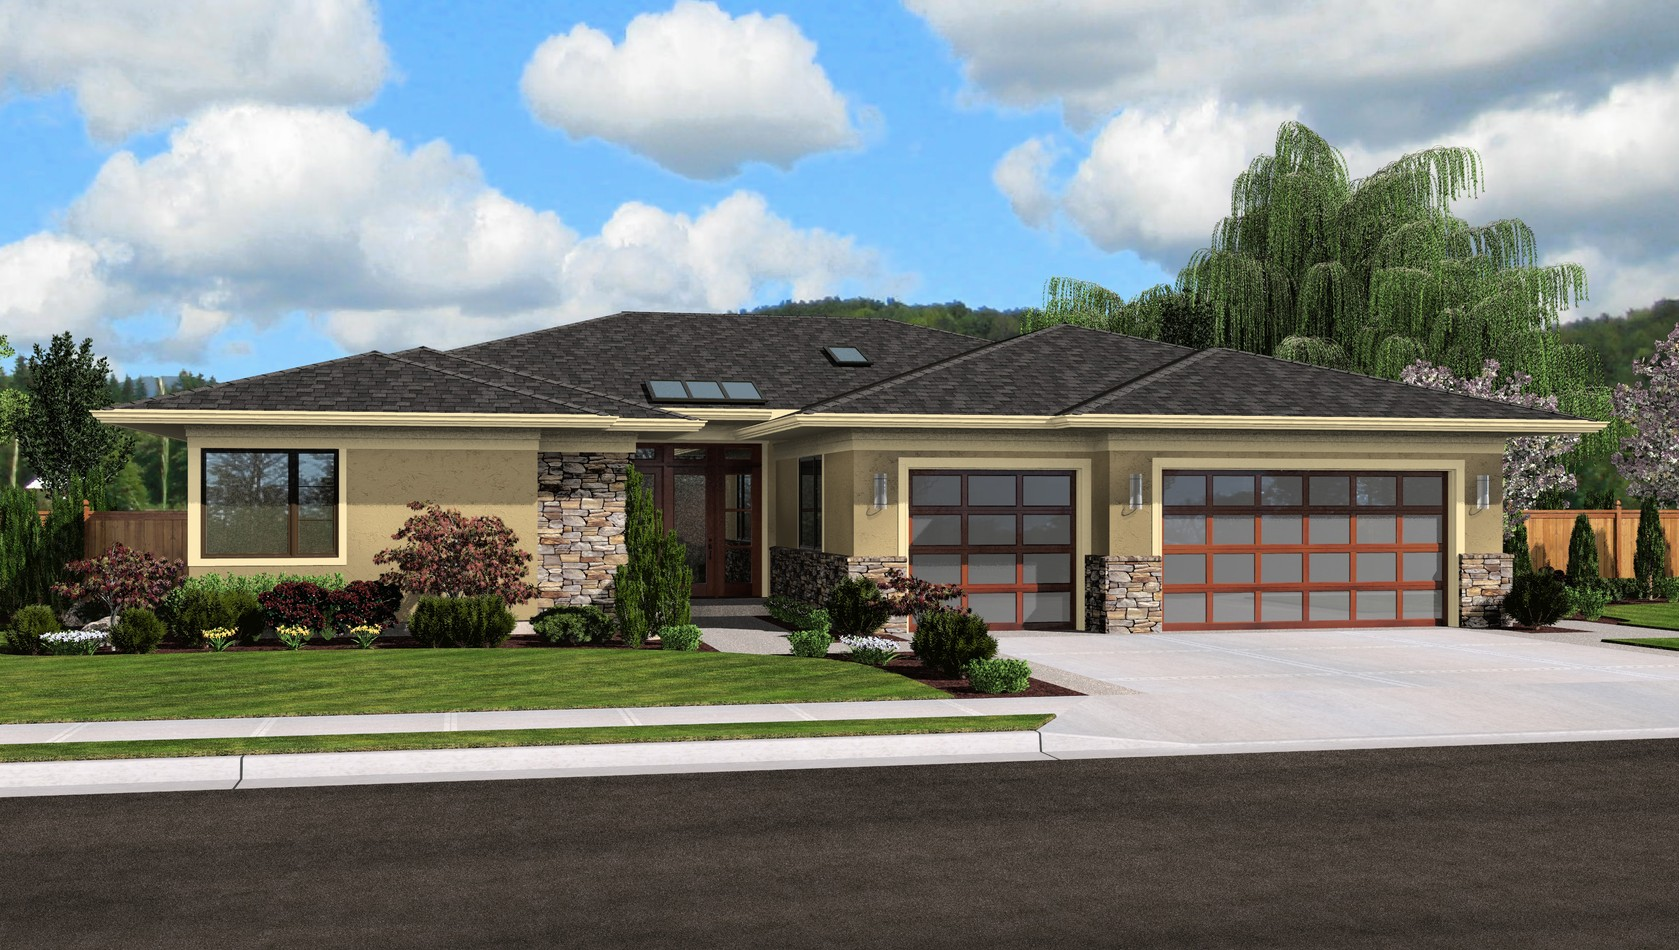 House plan 1245 the riverside for Houseplans co